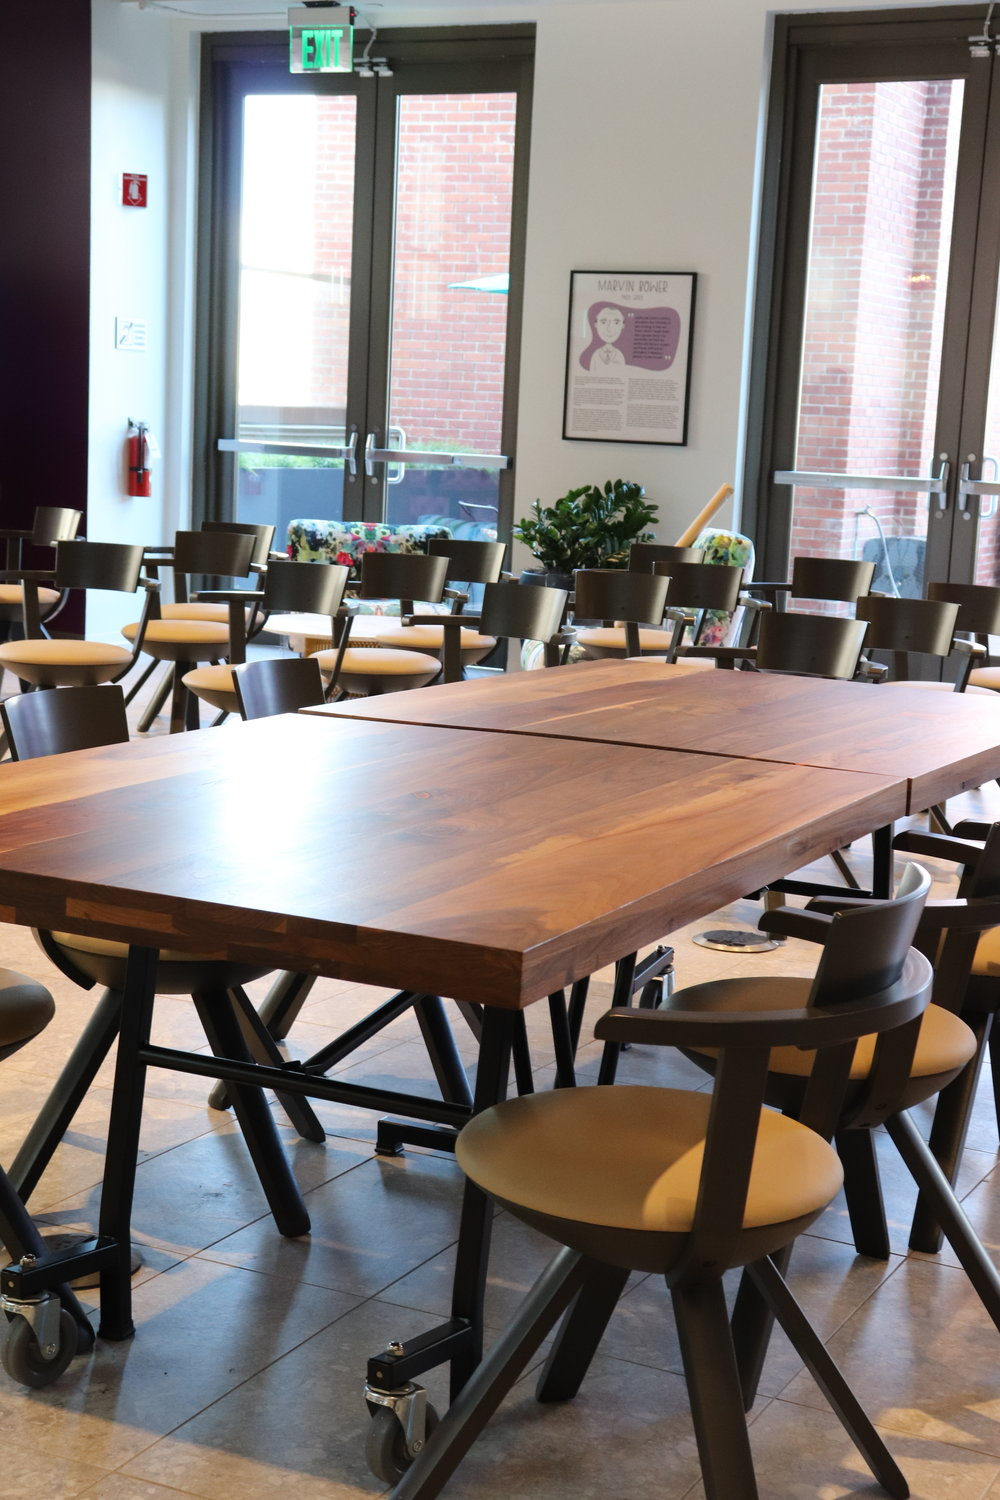 Walnut fold up cafeteria tables by Synecdoche Design Studio